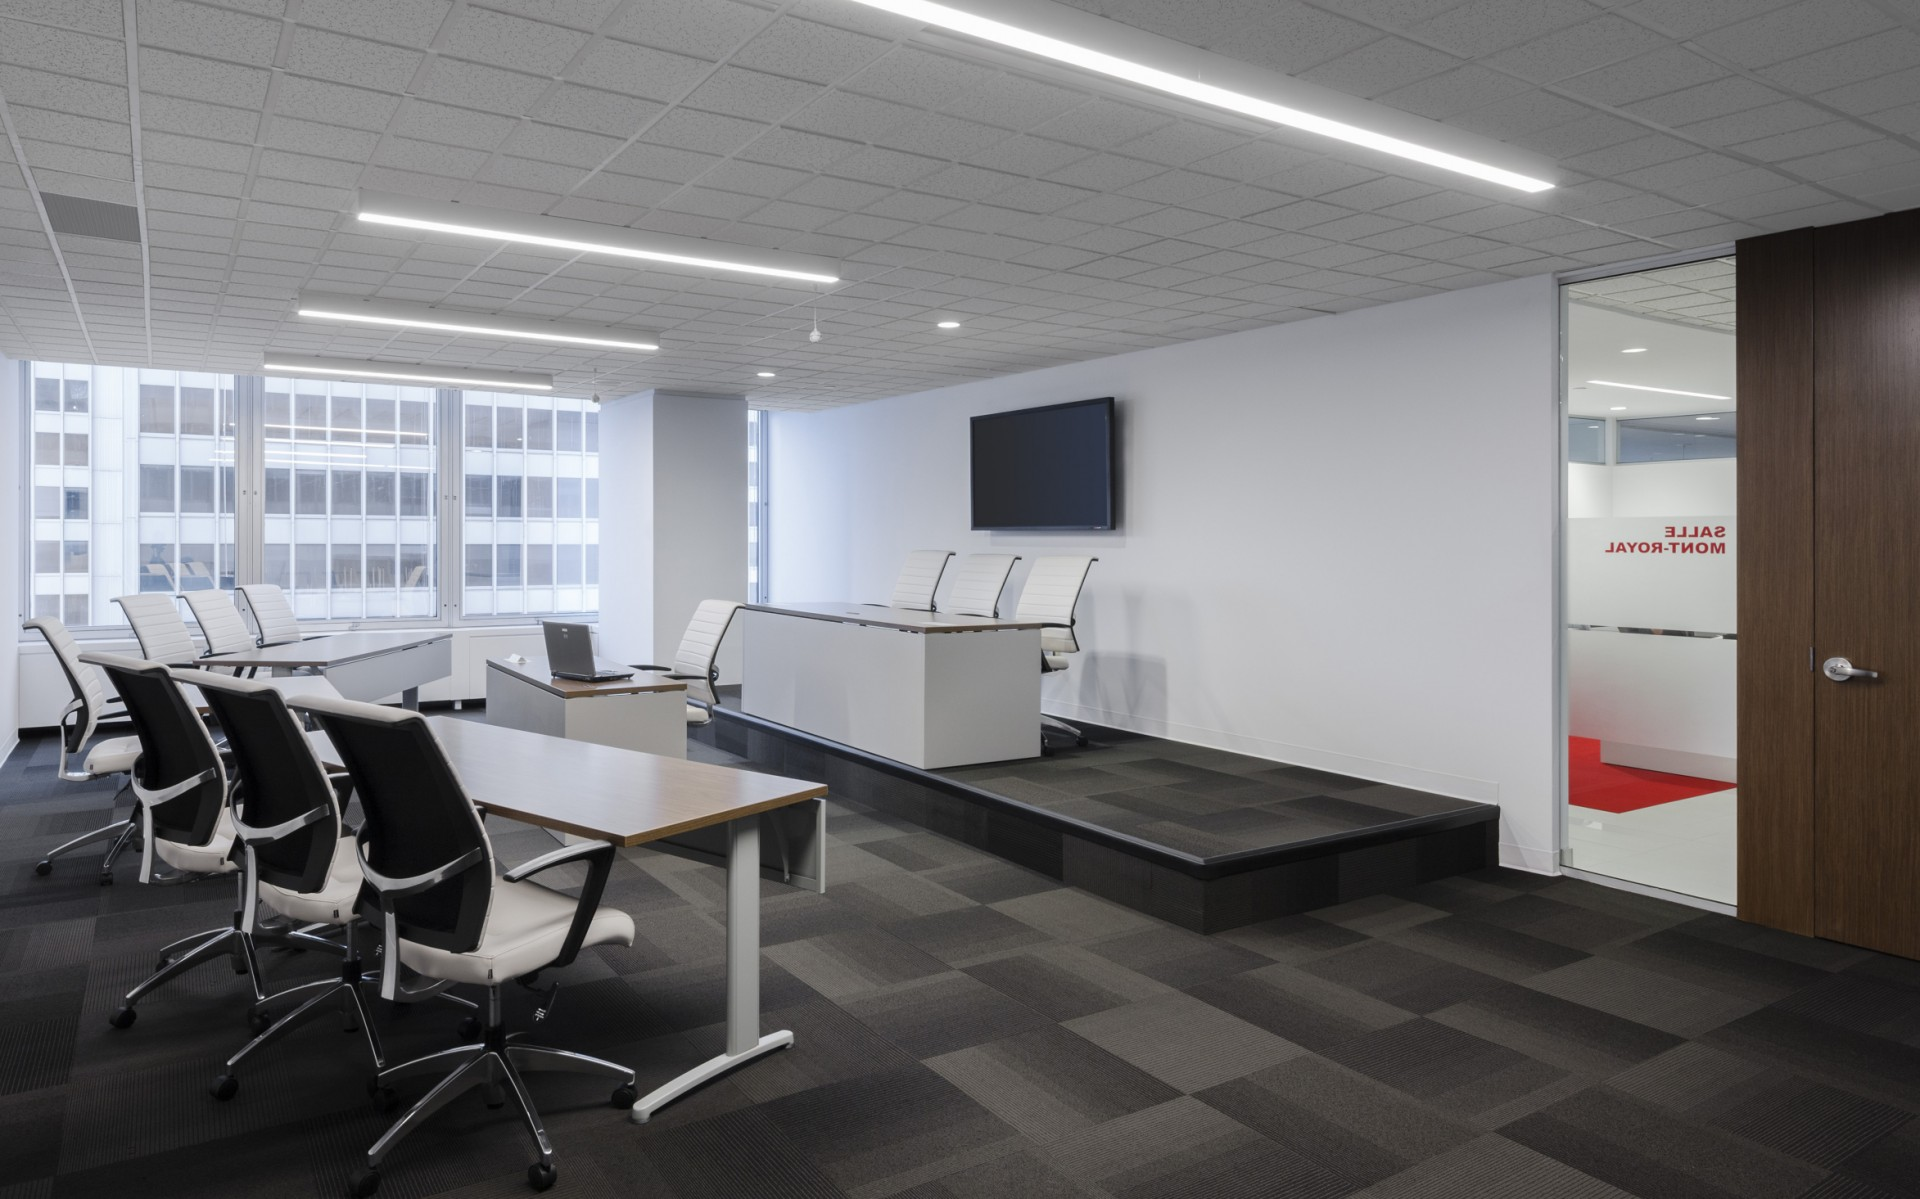 Lumenline Surface luminaires were used for general lighting in the office's conference rooms.